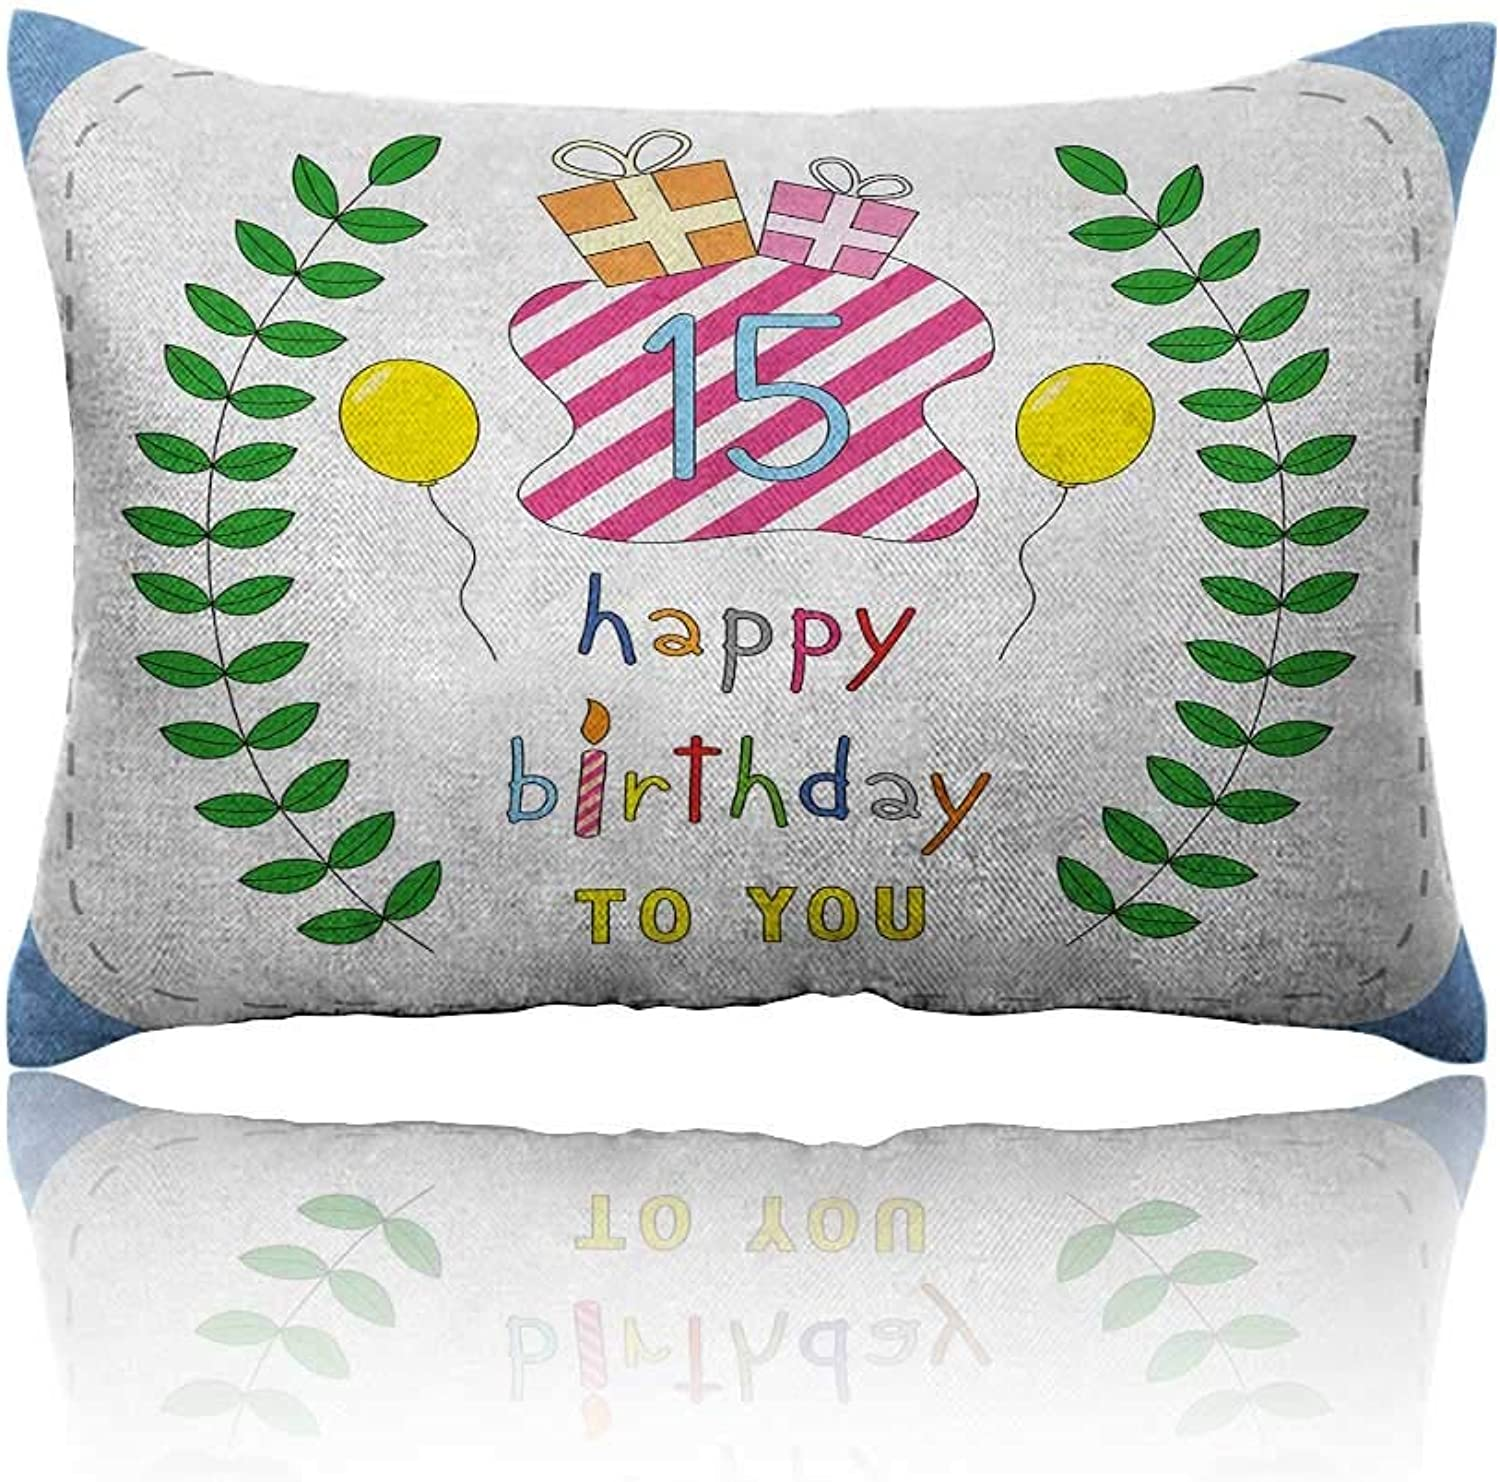 Anyangeight 15th Birthday Small Pillowcase Cute Sweet Cartoon Style Composition with Branches and Surprise Balloons Zipper Pillowcase 20 x26 Multicolor